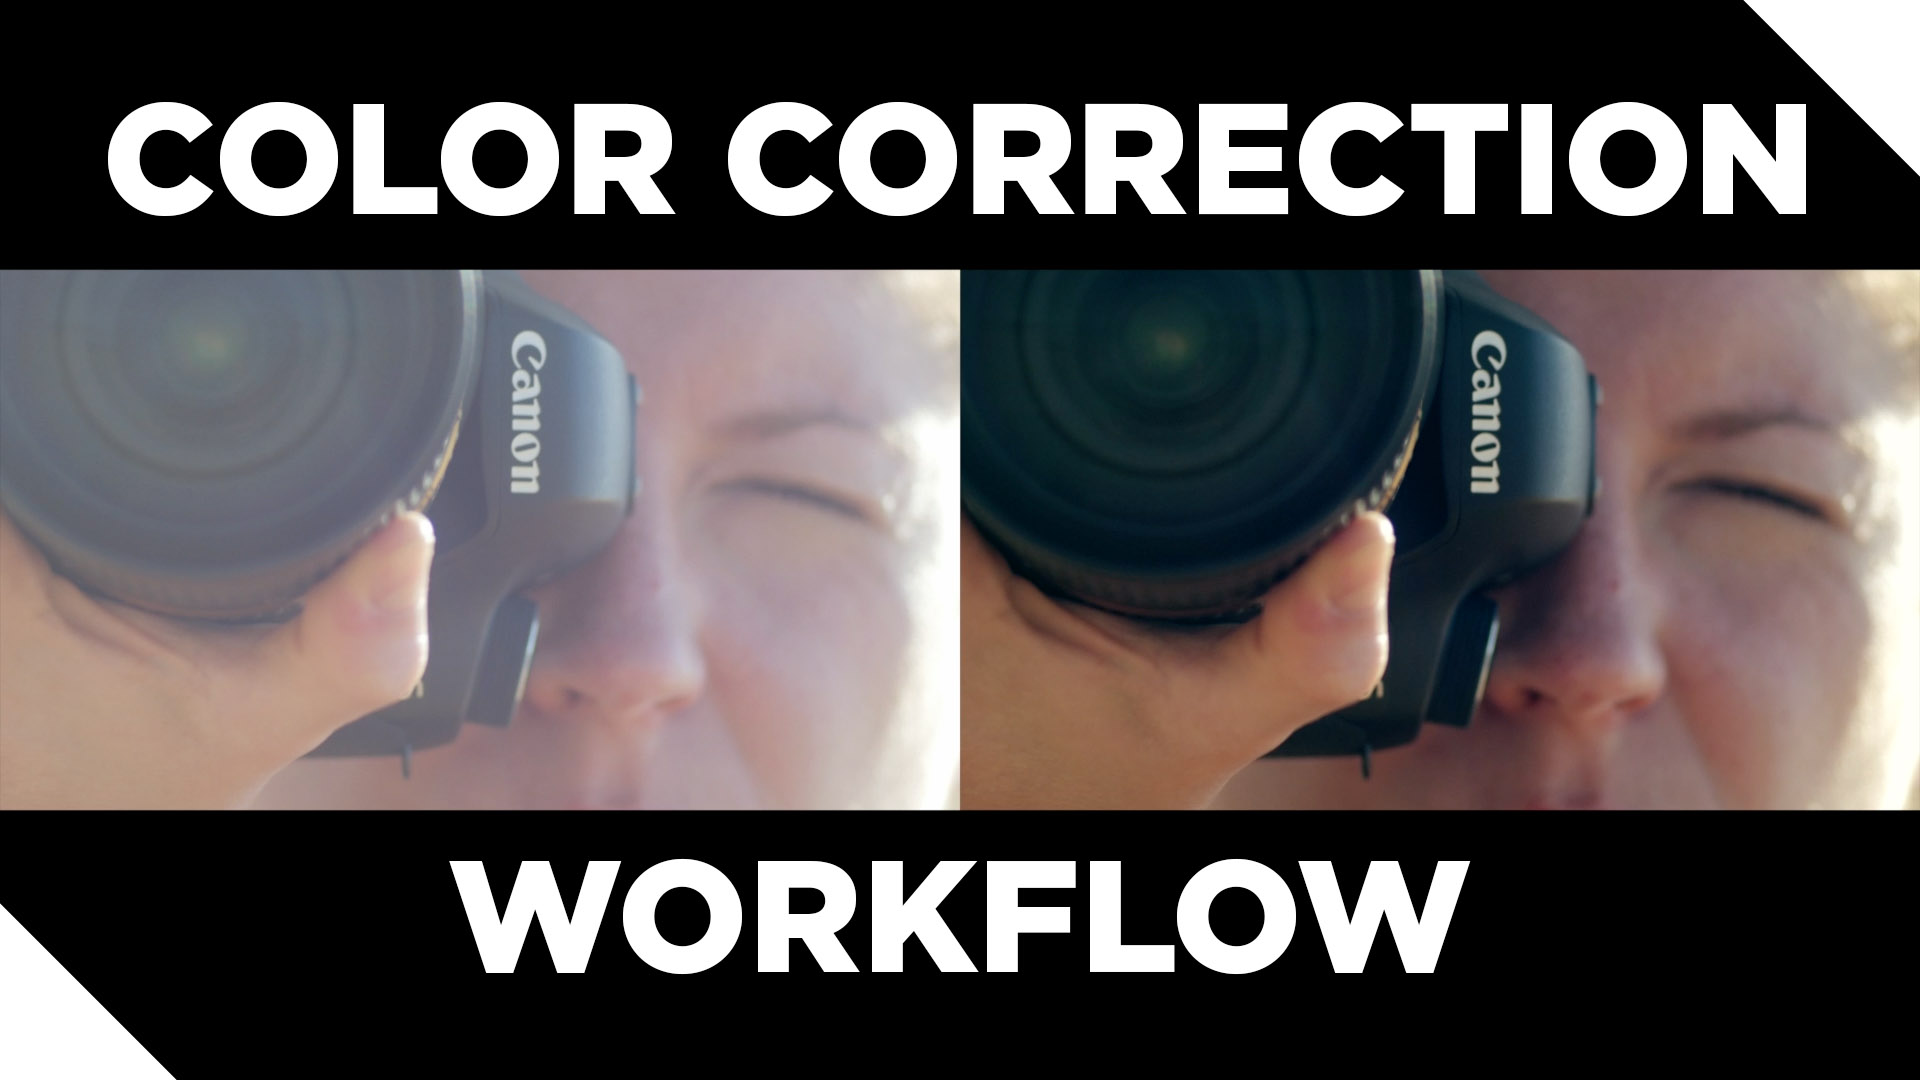 My Color Correction Workflow